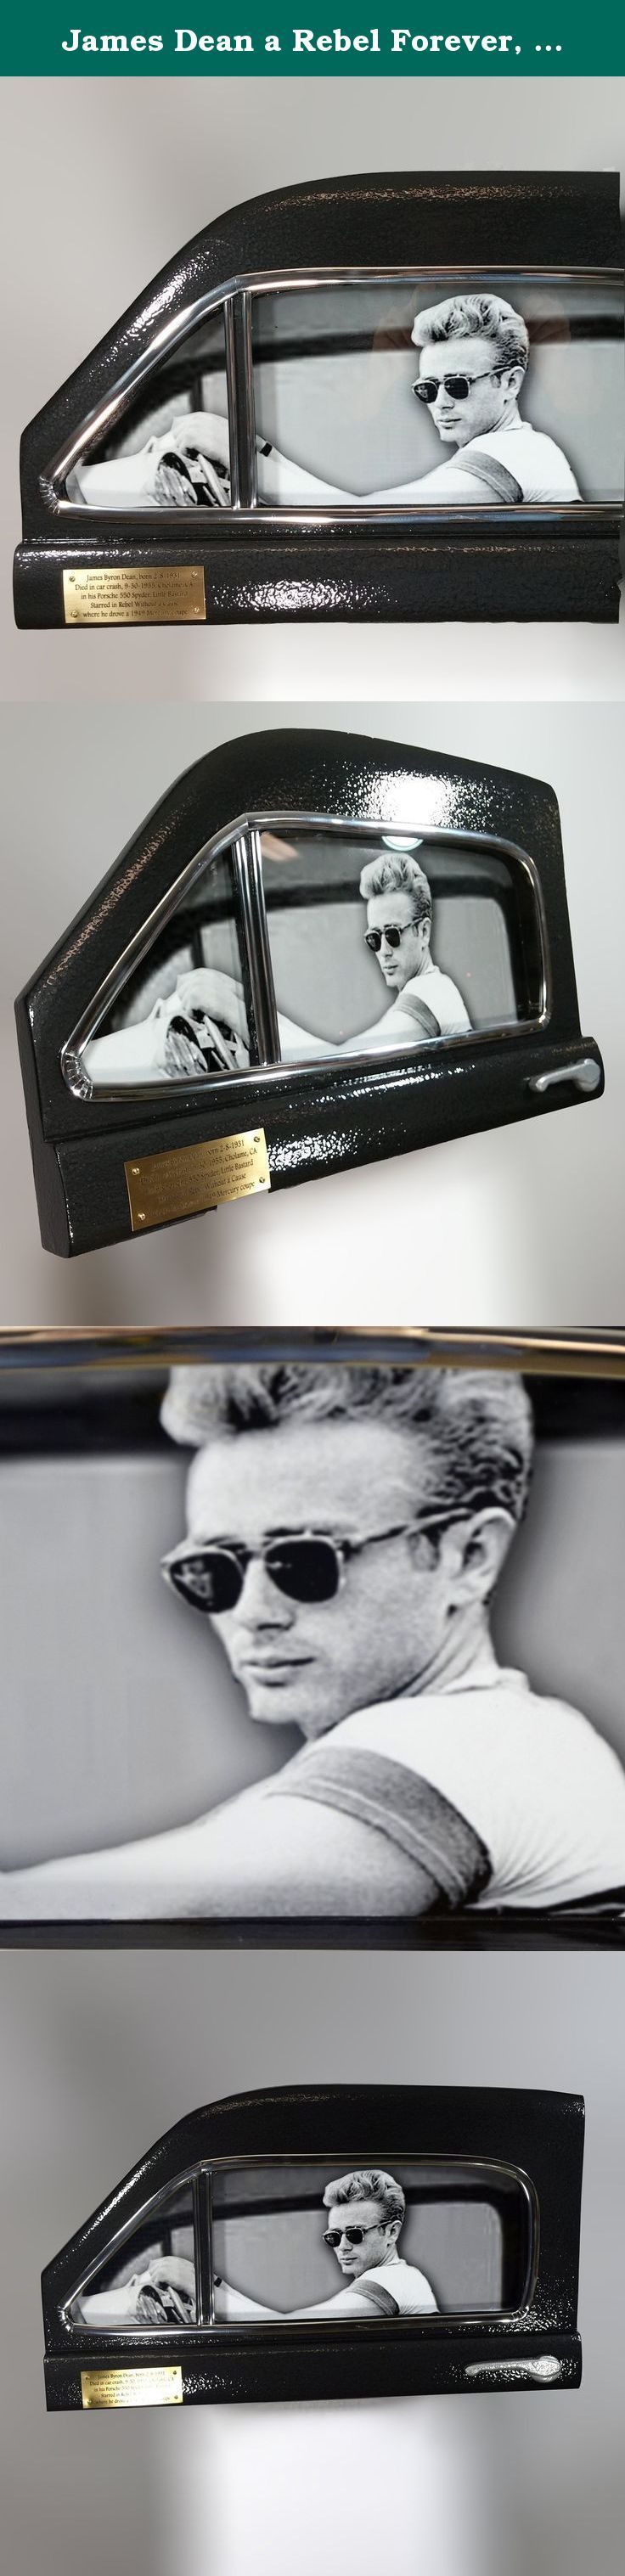 """James Dean a Rebel Forever, A Wall Art Memorial. William has completed a new 3D history wall art project and it is ready for sale in a limited release. It depicts James Dean in the 1949 Mercury coupe made famous in """"Rebel Without a Cause,"""" his second starring role. The photo of Dean used was taken while he sat in his Porsche 550 Spyder, nicknamed """"Little Bastard."""" Only a few days later, on September 30, 1955, Dean dies at age 24 in the Porsche headed to a car race in Salinas, California..."""